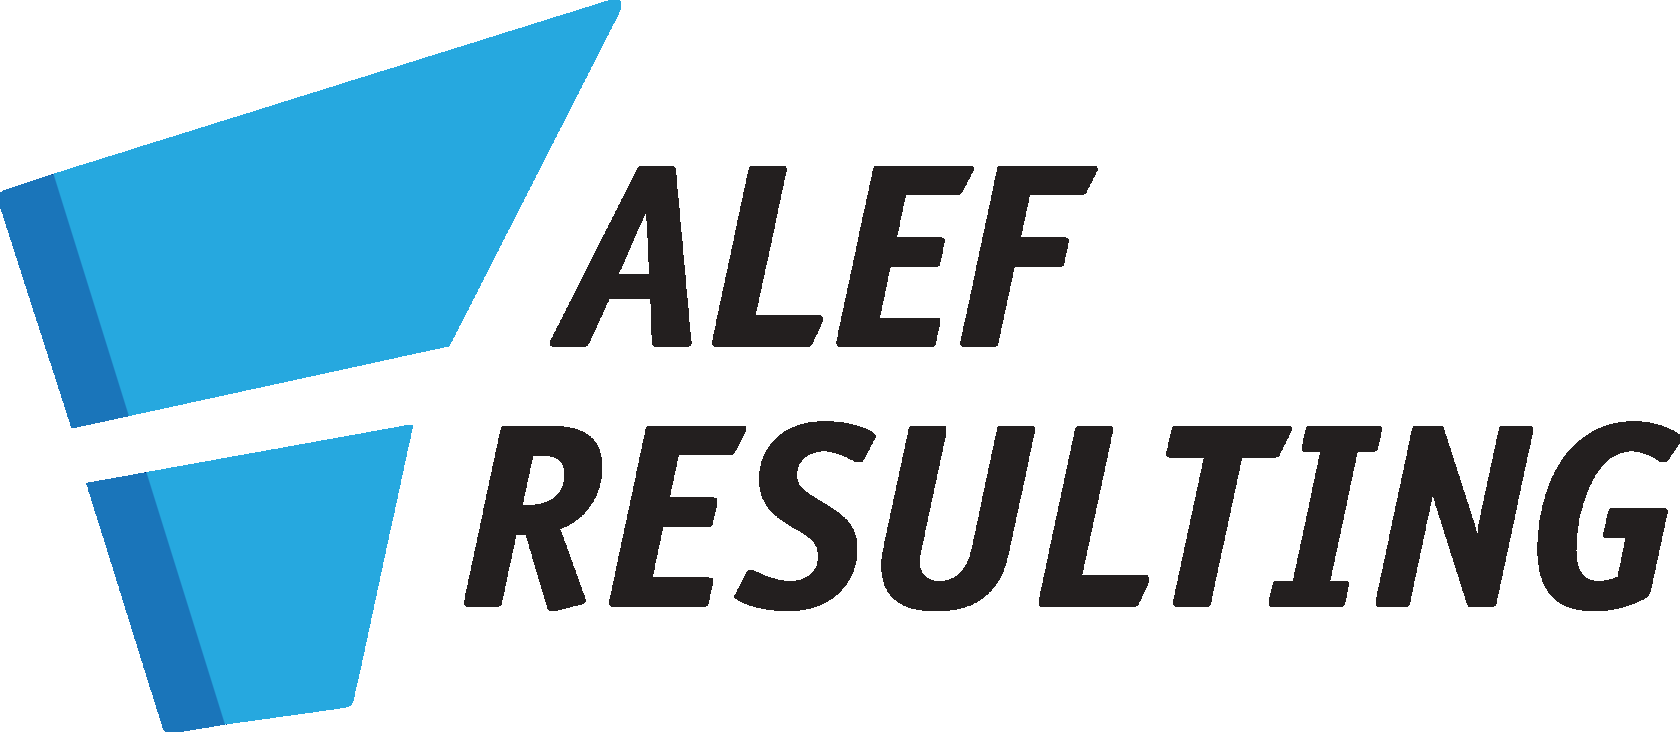 ALEF RESULTING